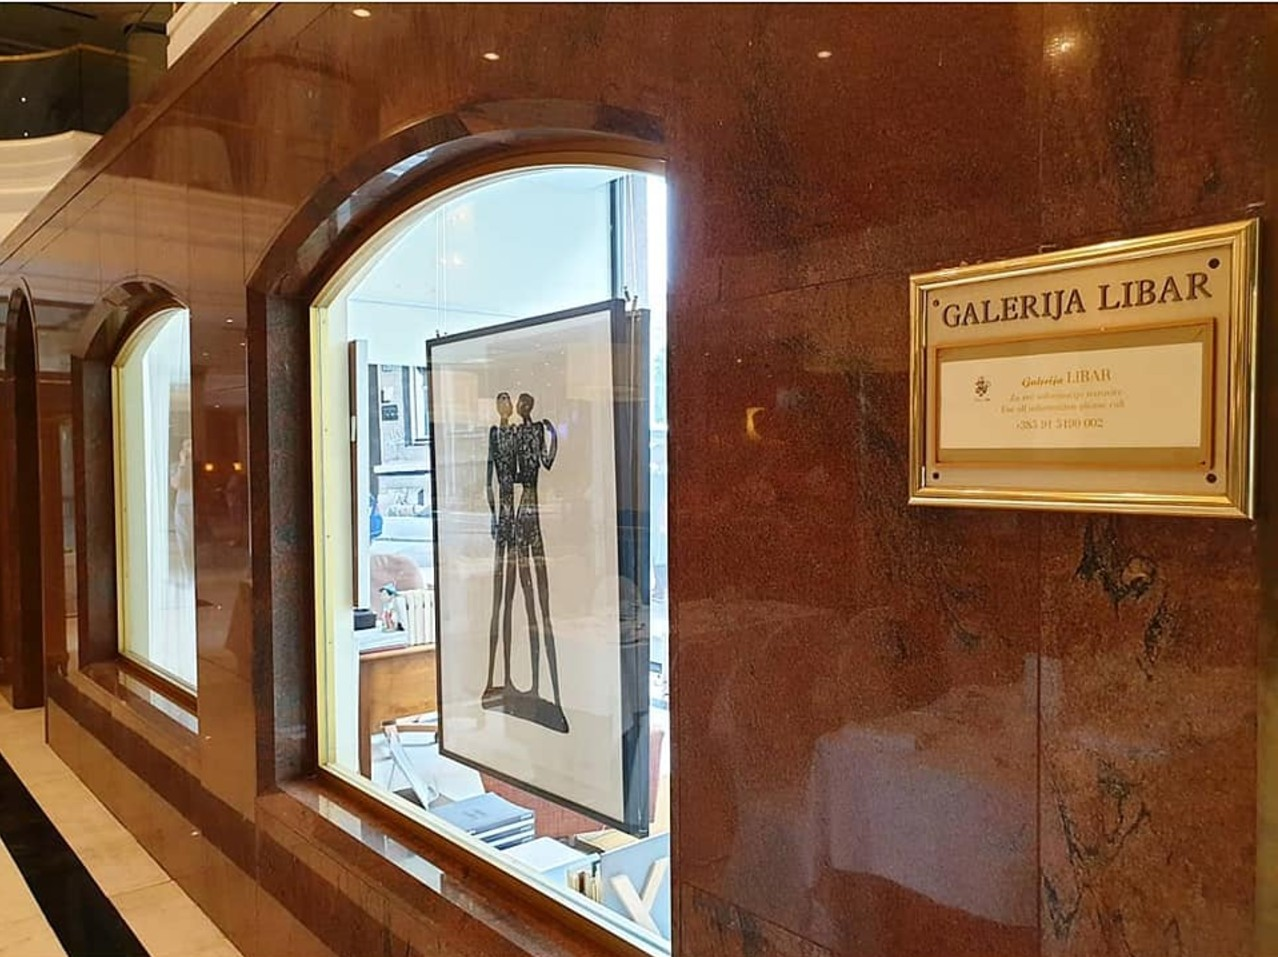 Cooperation with Galerija Libar